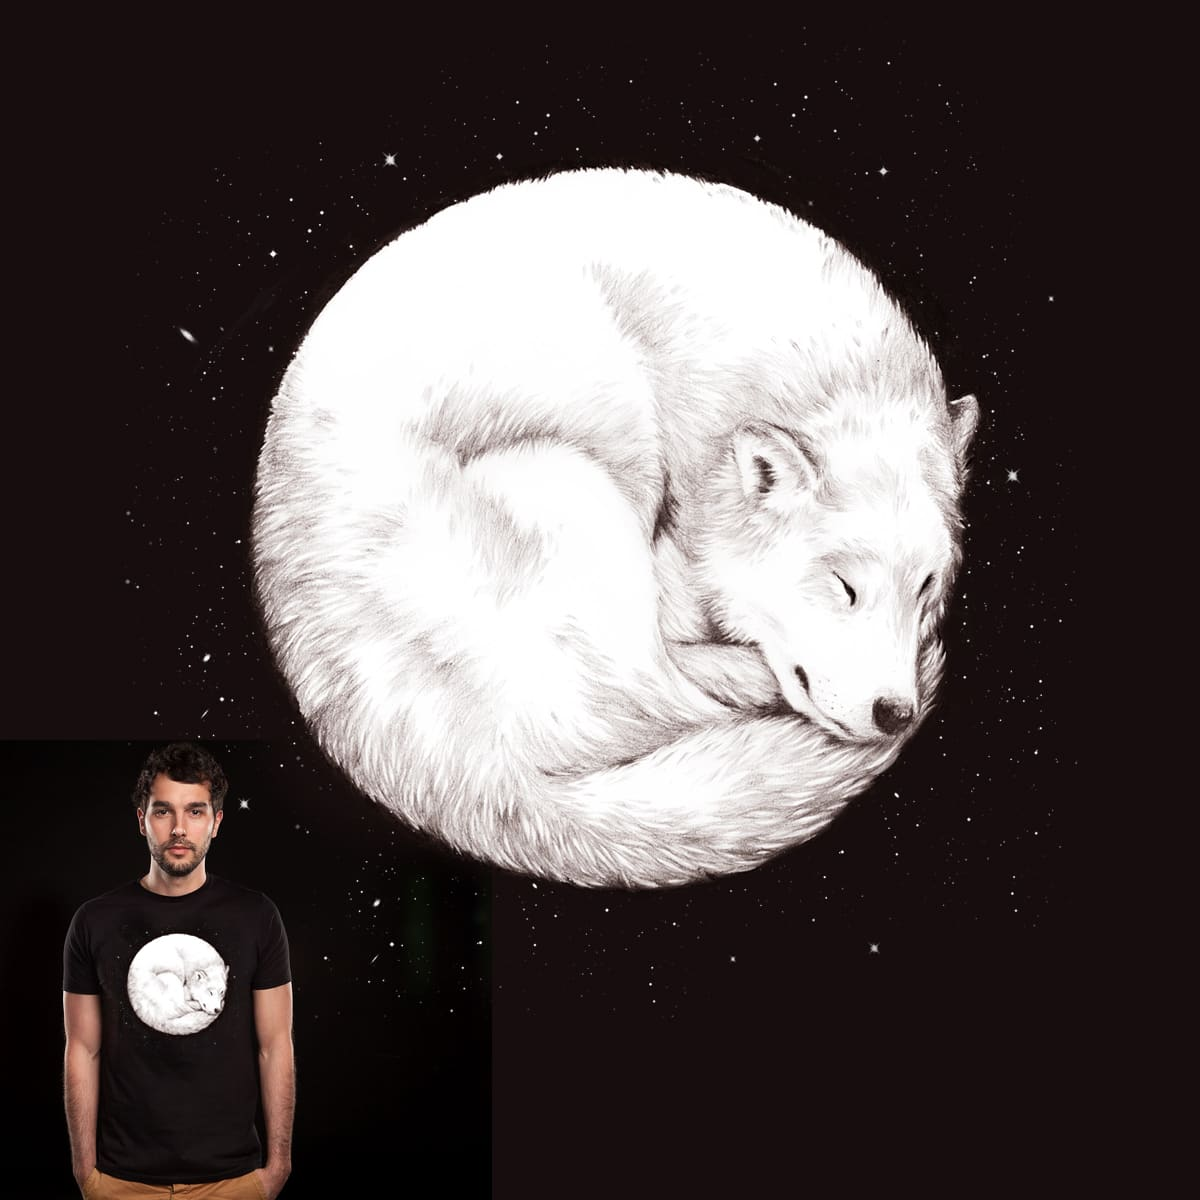 The howl of the moon by DanielTeixeira on Threadless